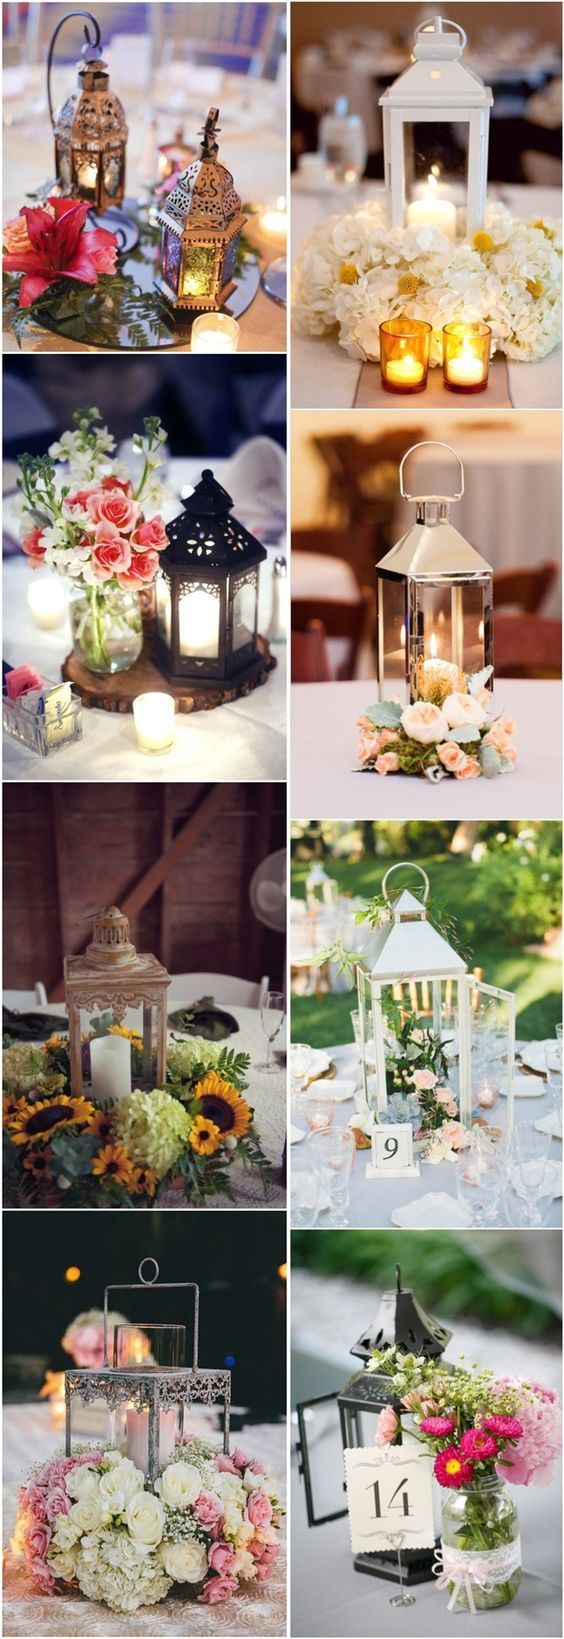 lantern wedding decors- lantern wedding centerpieces:                                                                                                                                                      More